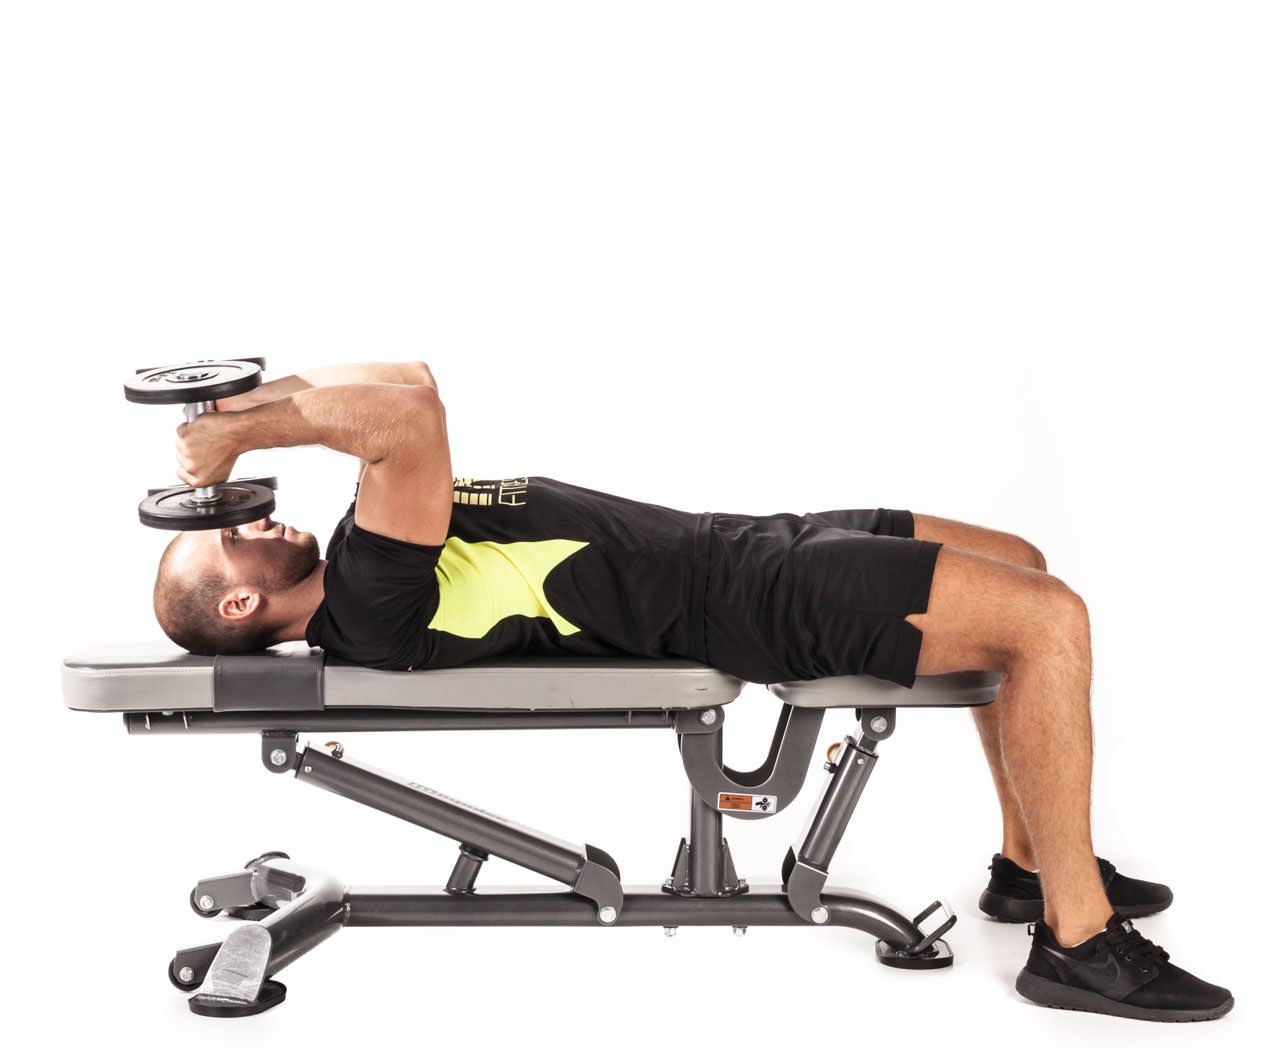 Flat Bench Triceps Extension frame #2